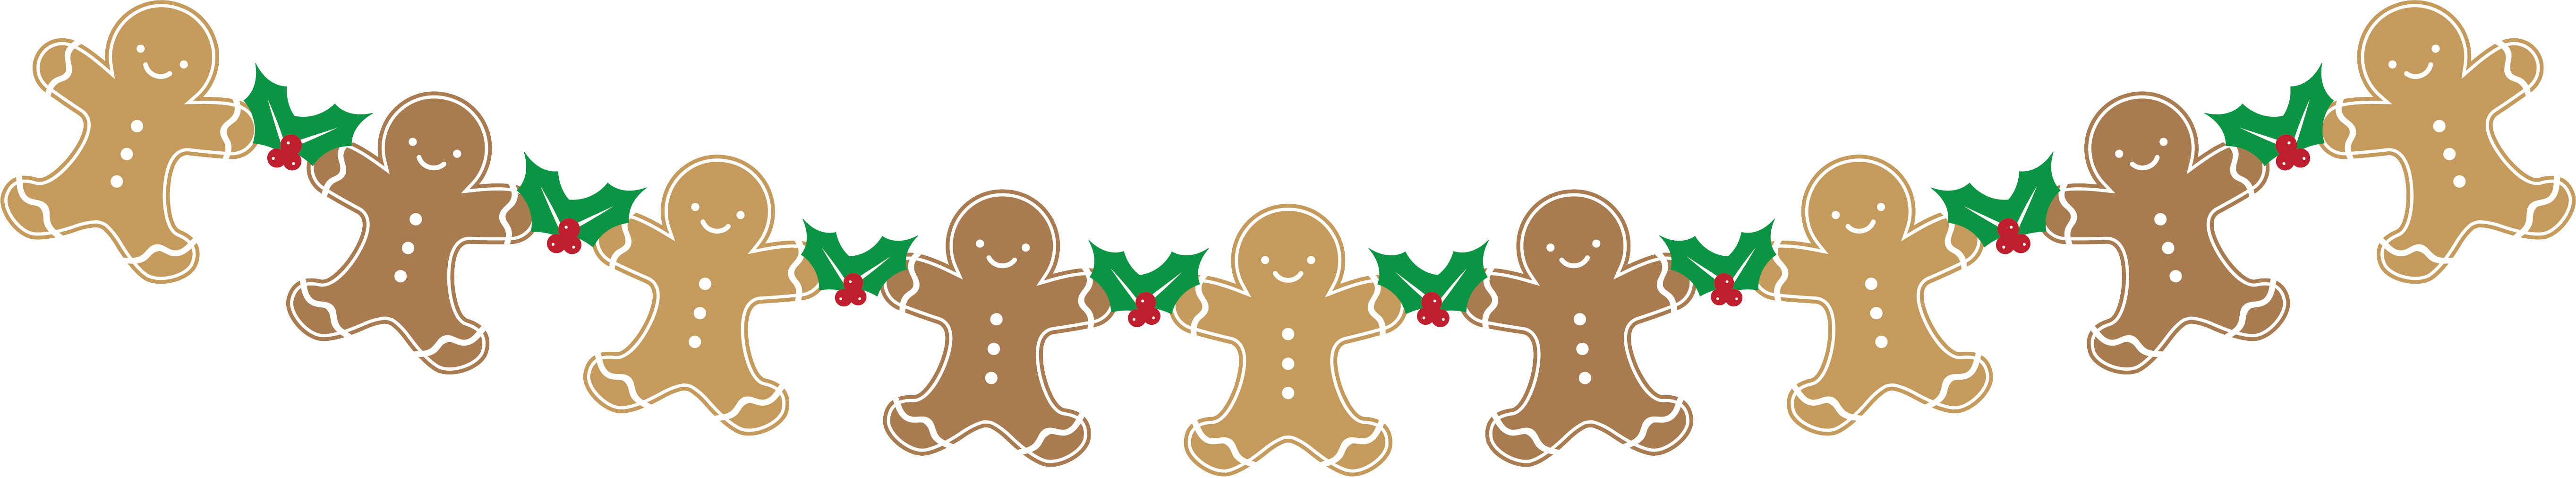 Gingerbread clipart treat. Raise money for charity